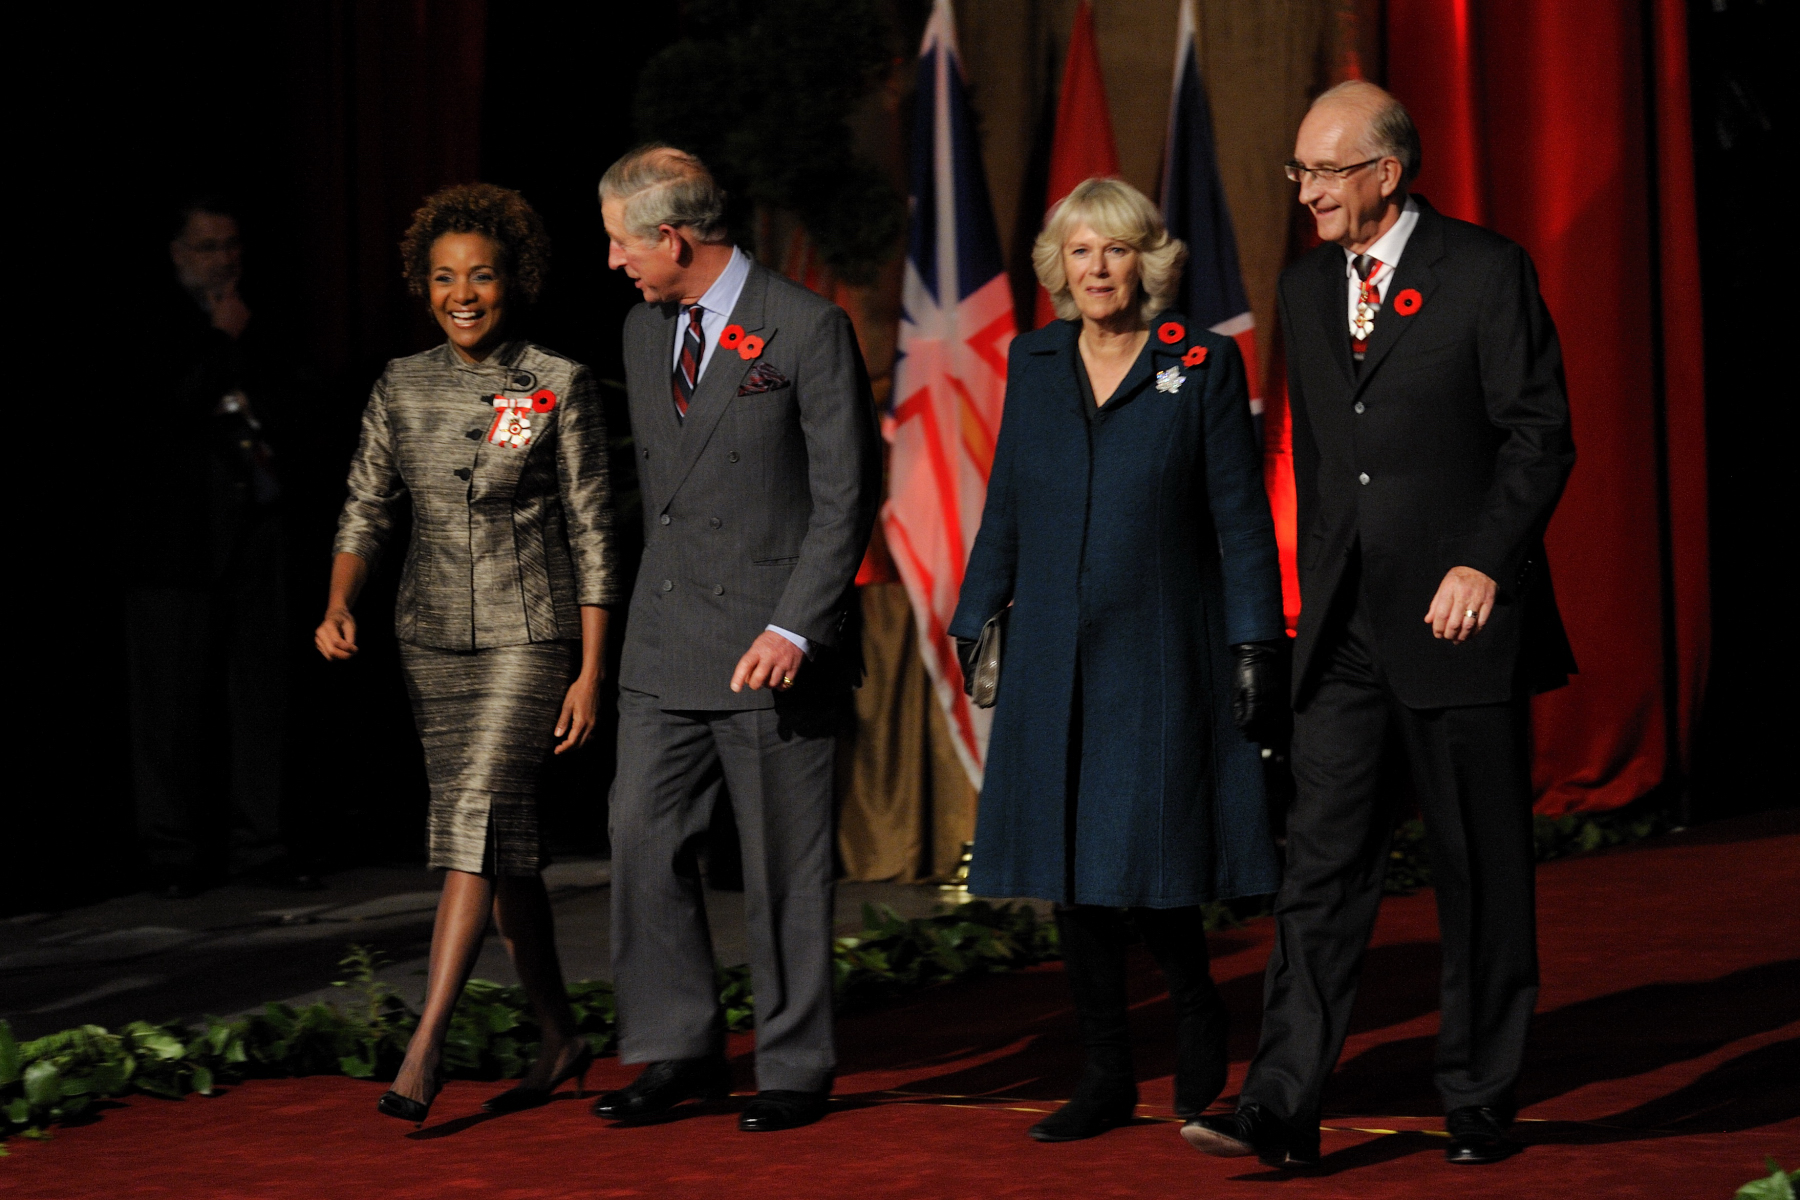 Their Excellencies welcomed Their Royal Highnesses The Prince of Wales and The Duchess of Cornwall upon their arrival in St. John's, Newfoundland and Labrador, as they begin their 11-day visit to Canada.